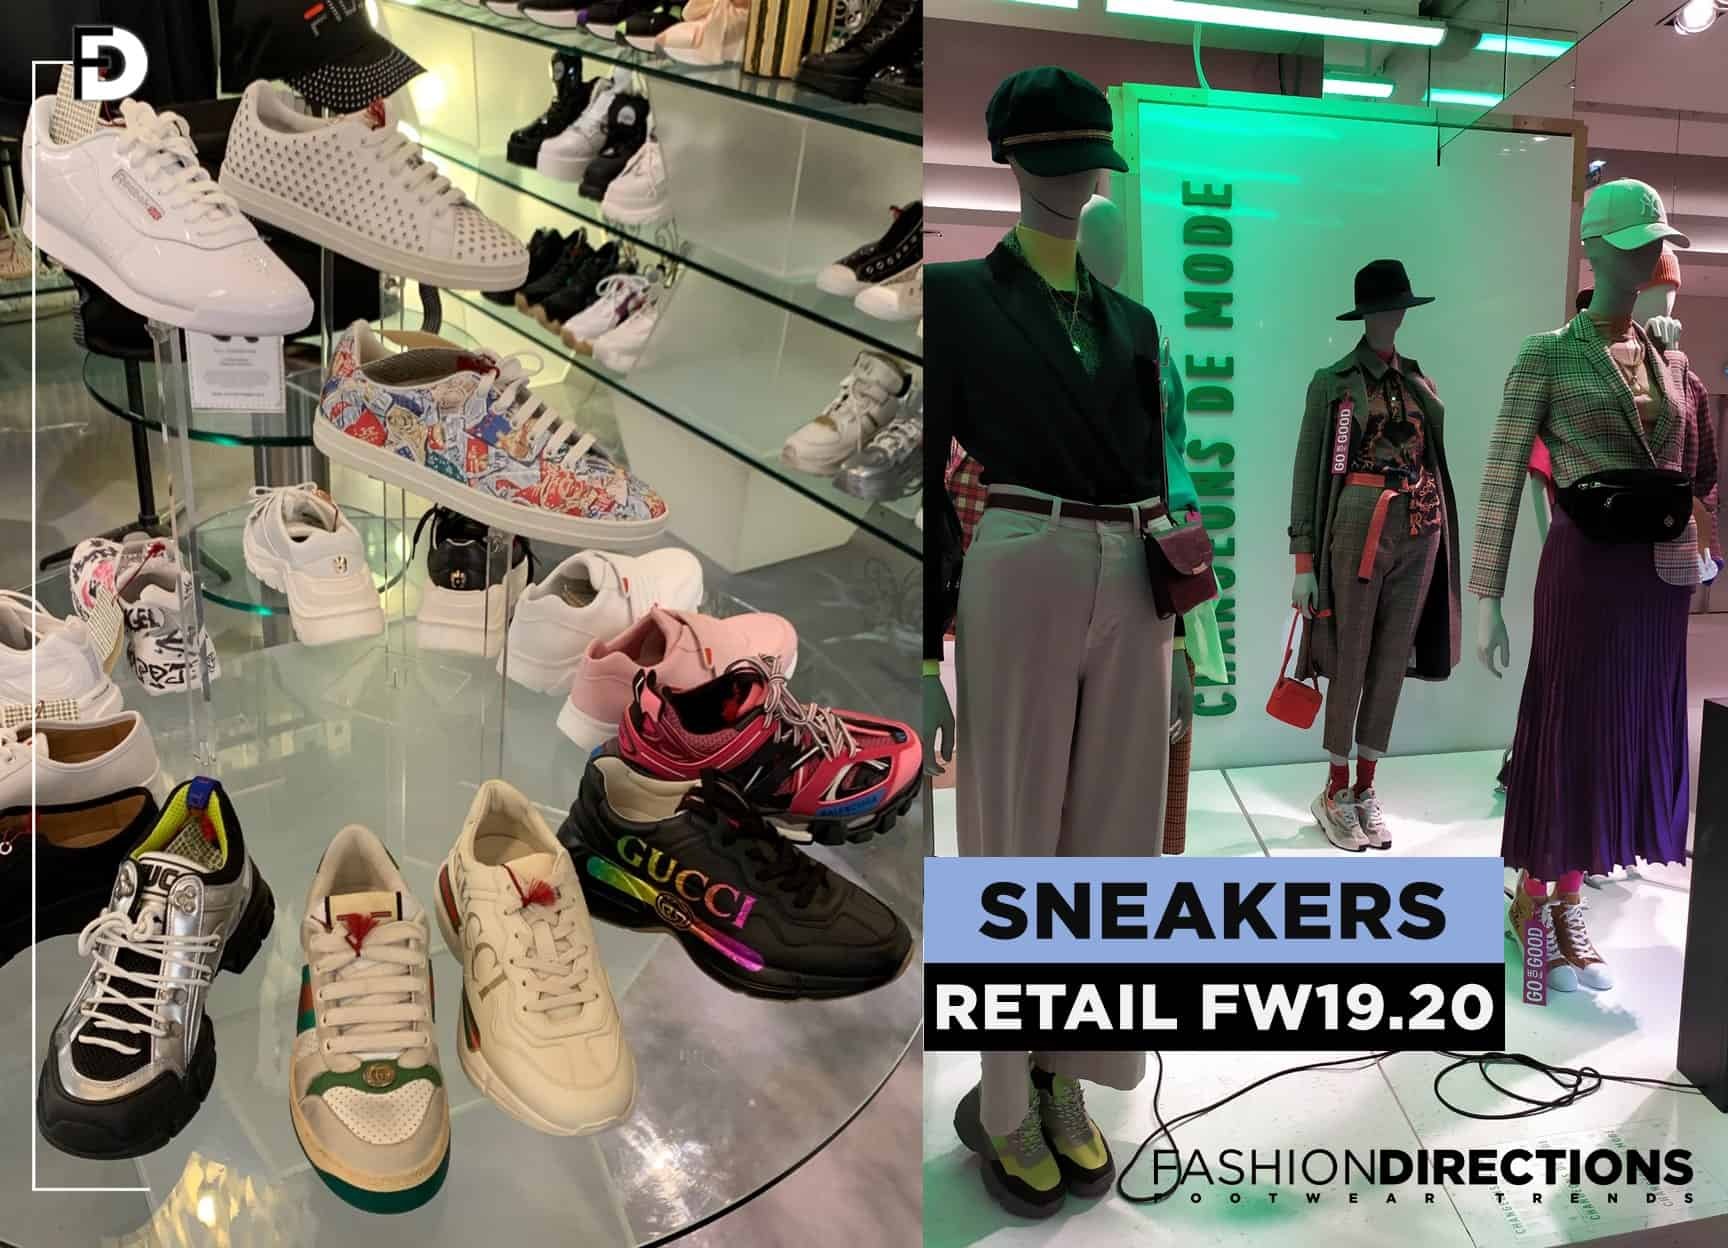 Retail sneakers FW19.20